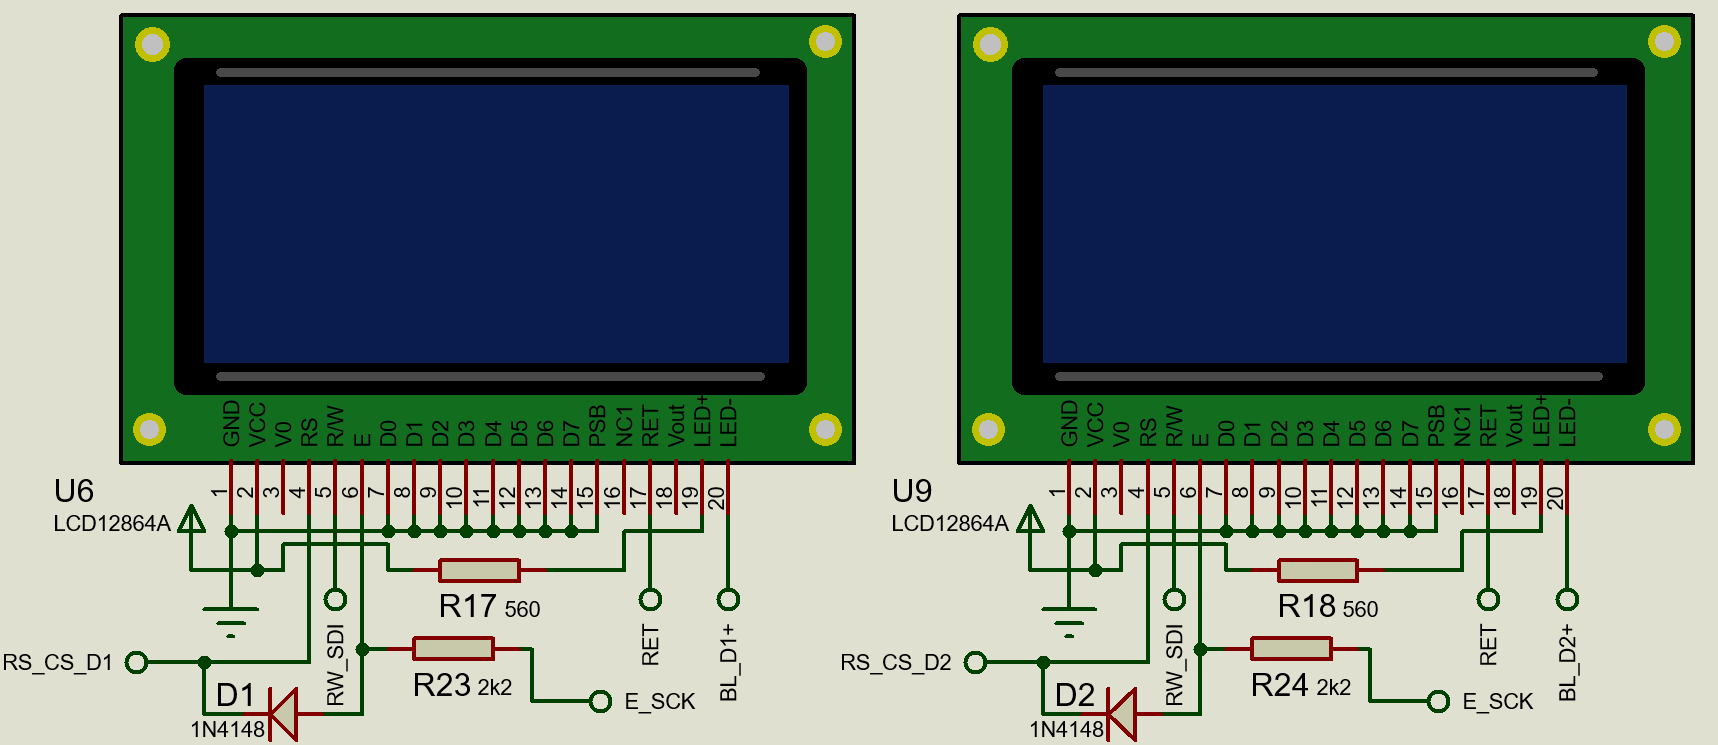 Work around for glitches on a 128x64 ST7920 display · Issue